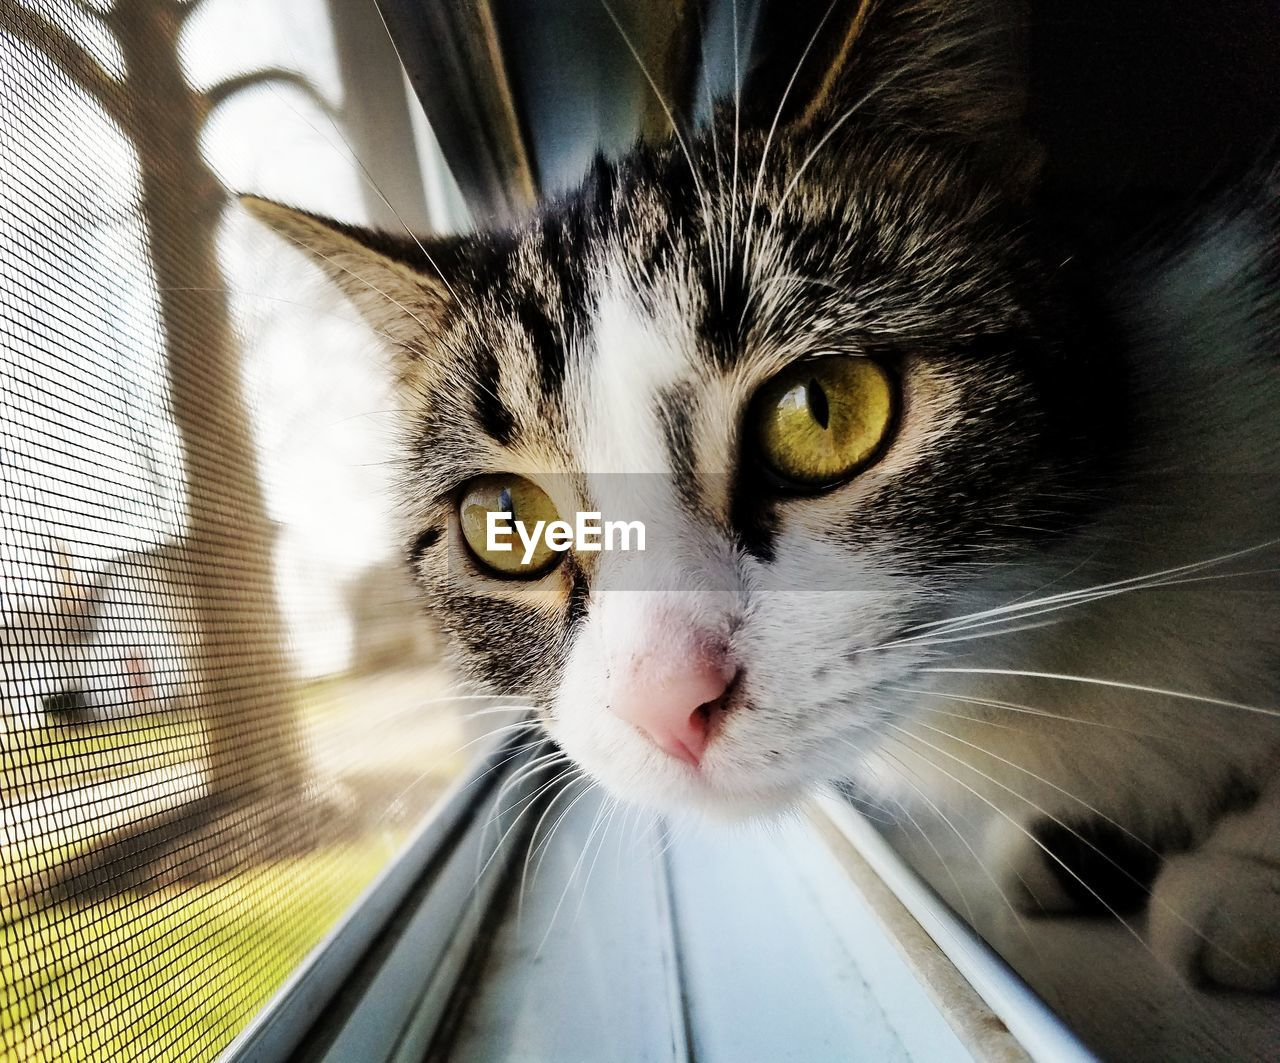 domestic cat, domestic animals, feline, pets, mammal, animal themes, one animal, whisker, looking at camera, portrait, close-up, indoors, no people, day, yellow eyes